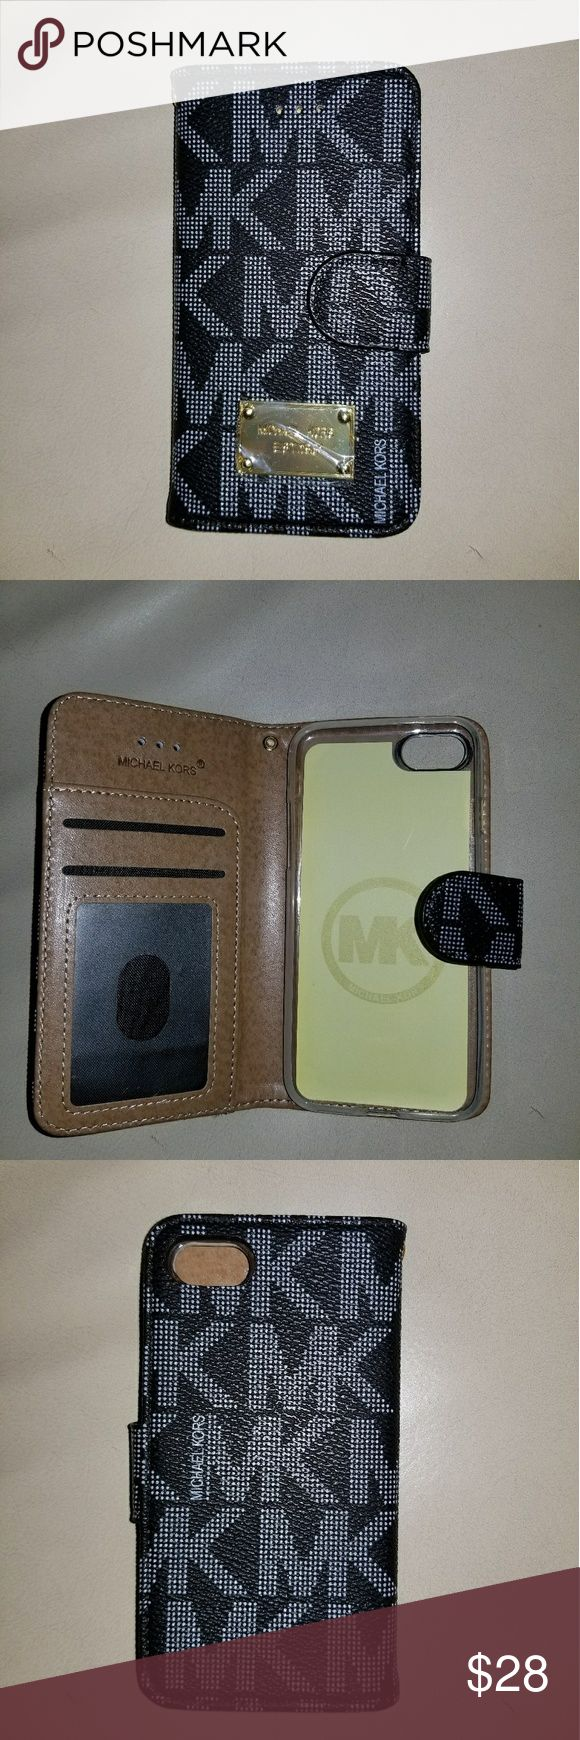 New MK Black Case Wallet for iPhone 7 Flip Case Wallet, has room for cards and cash. Turns into a stand too. Has a stunning bling magnetic clasp that keeps the case closed  Easy access to control ports, cameras and buttons Protect your cell phone from damage scratches, shock Luxury case Michael Kors Accessories Phone Cases